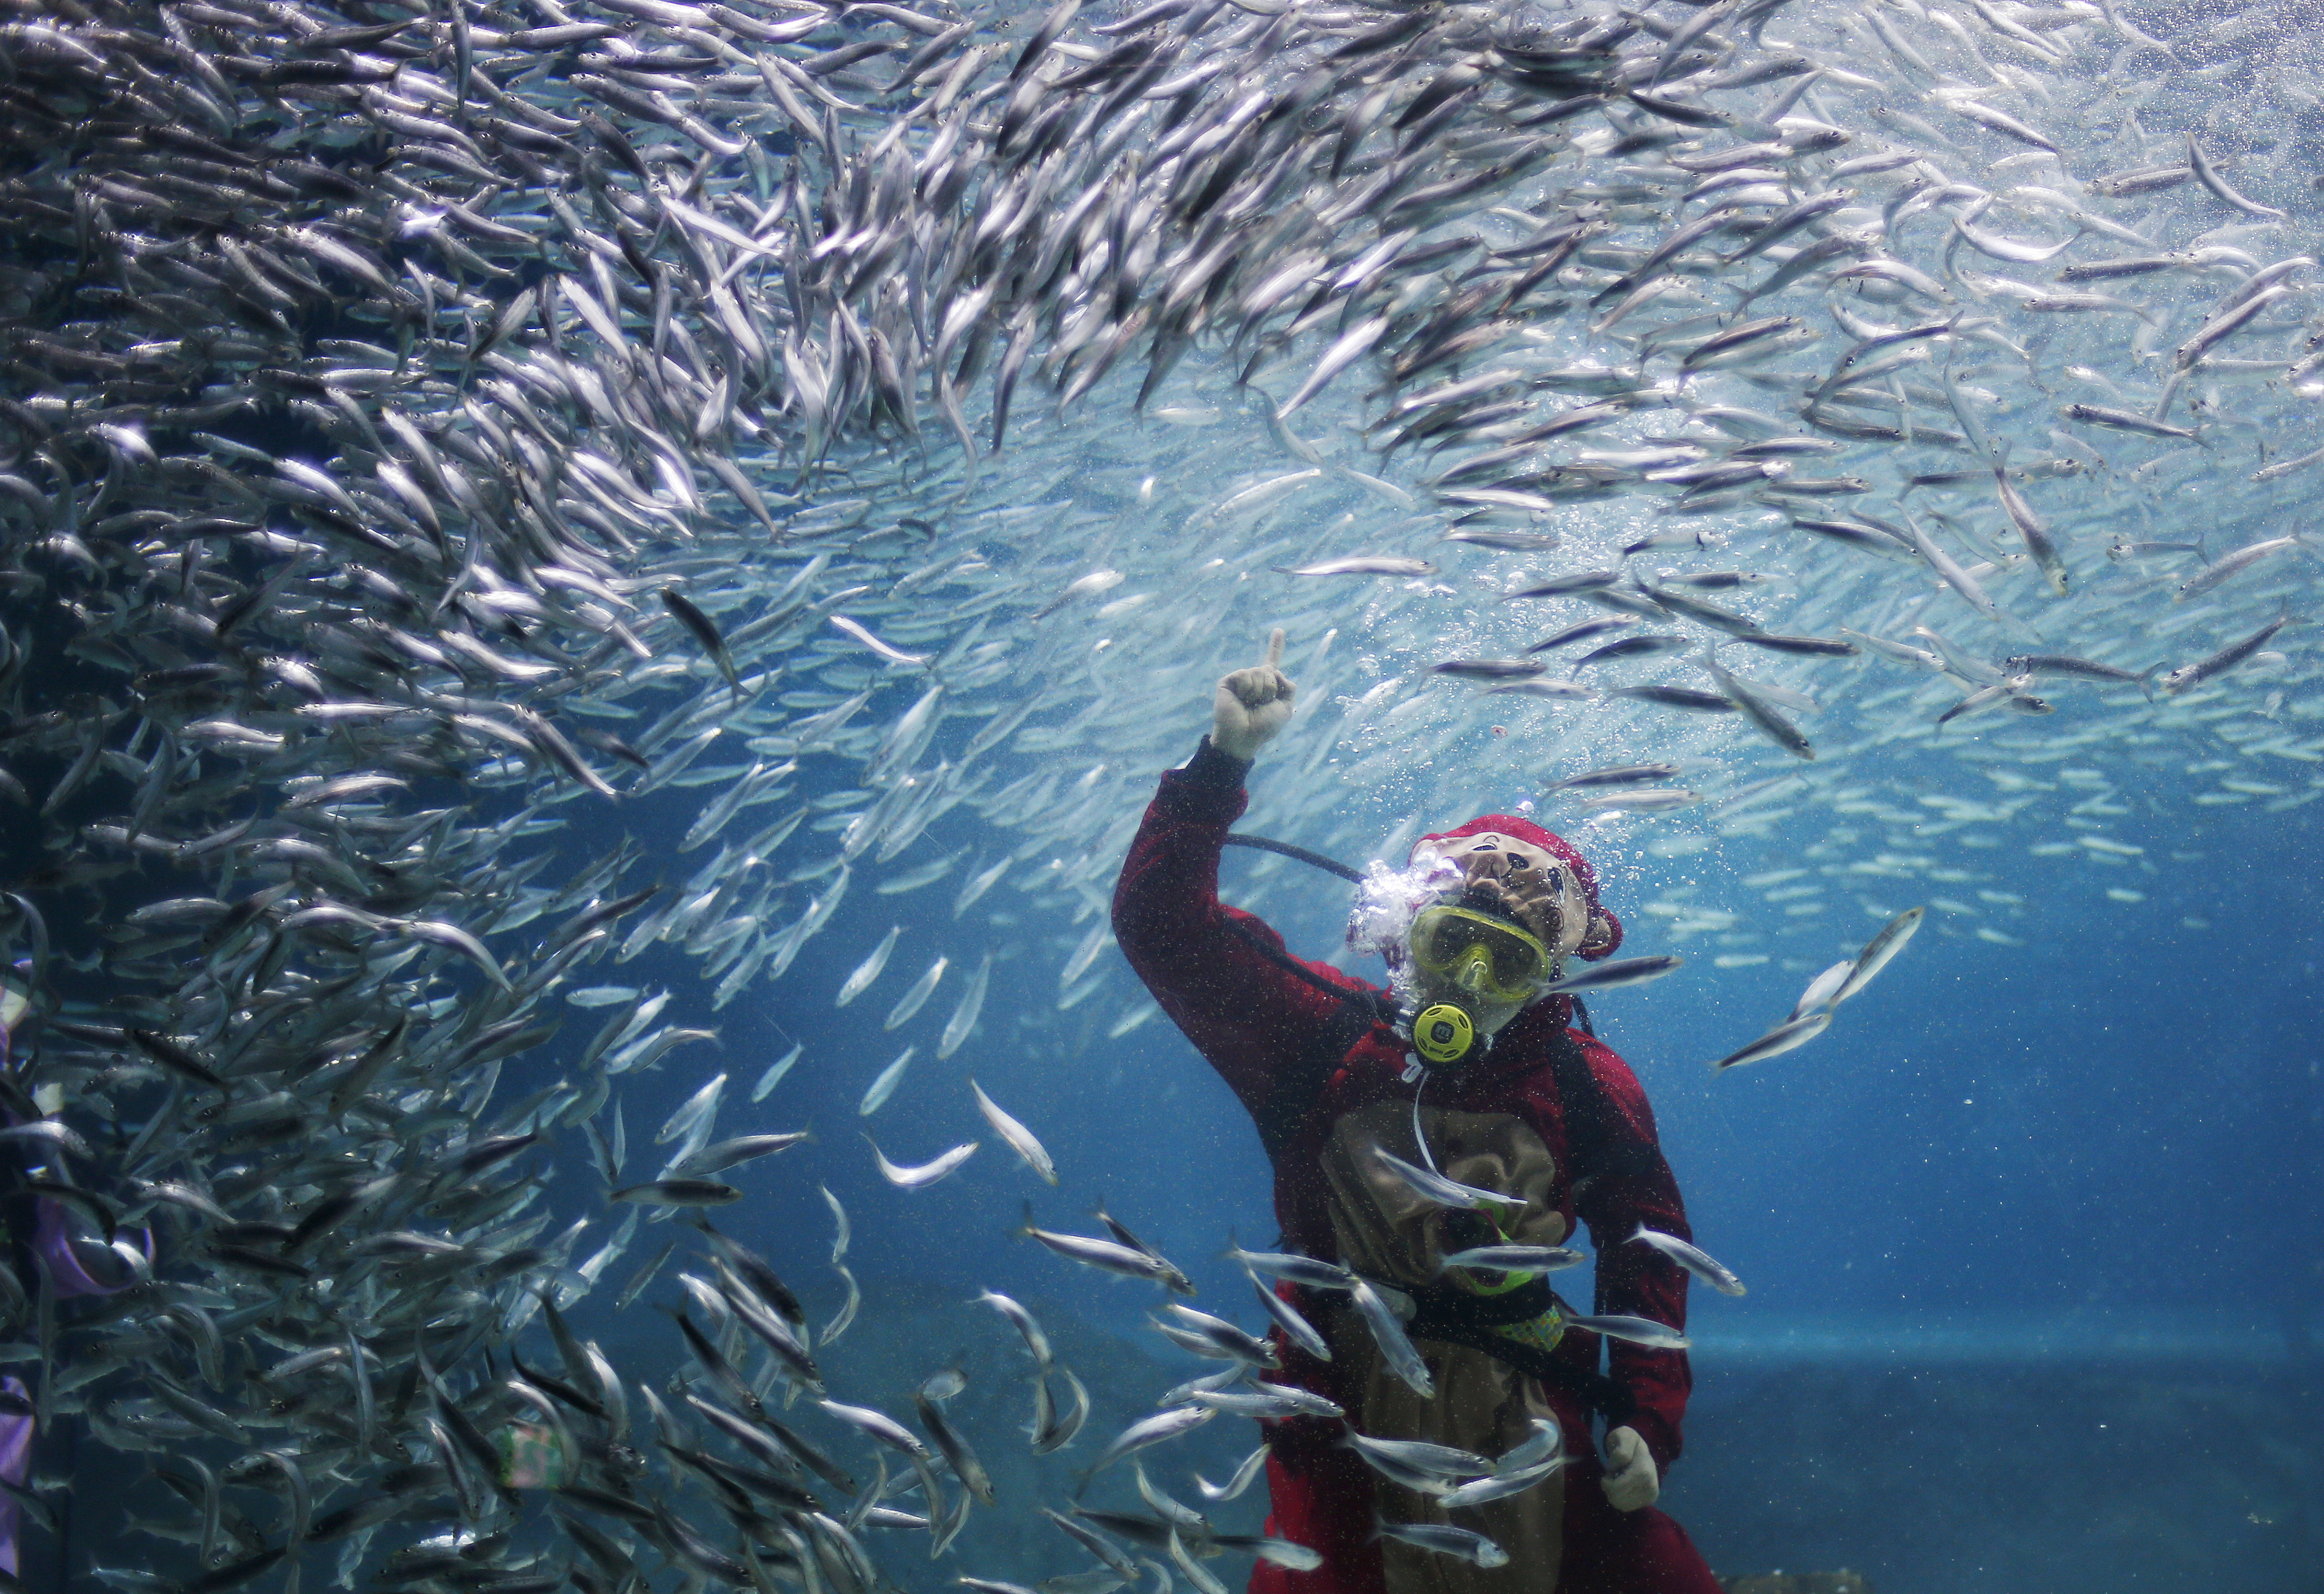 A diver dressed in a monkey costume featuring animal signs from the Chinese zodiac calendar, performs with sardines, in conjunction with Chinese Lunar New Year celebrations at an aquarium in Seoul, South Korea, on Jan. 12, 2016.